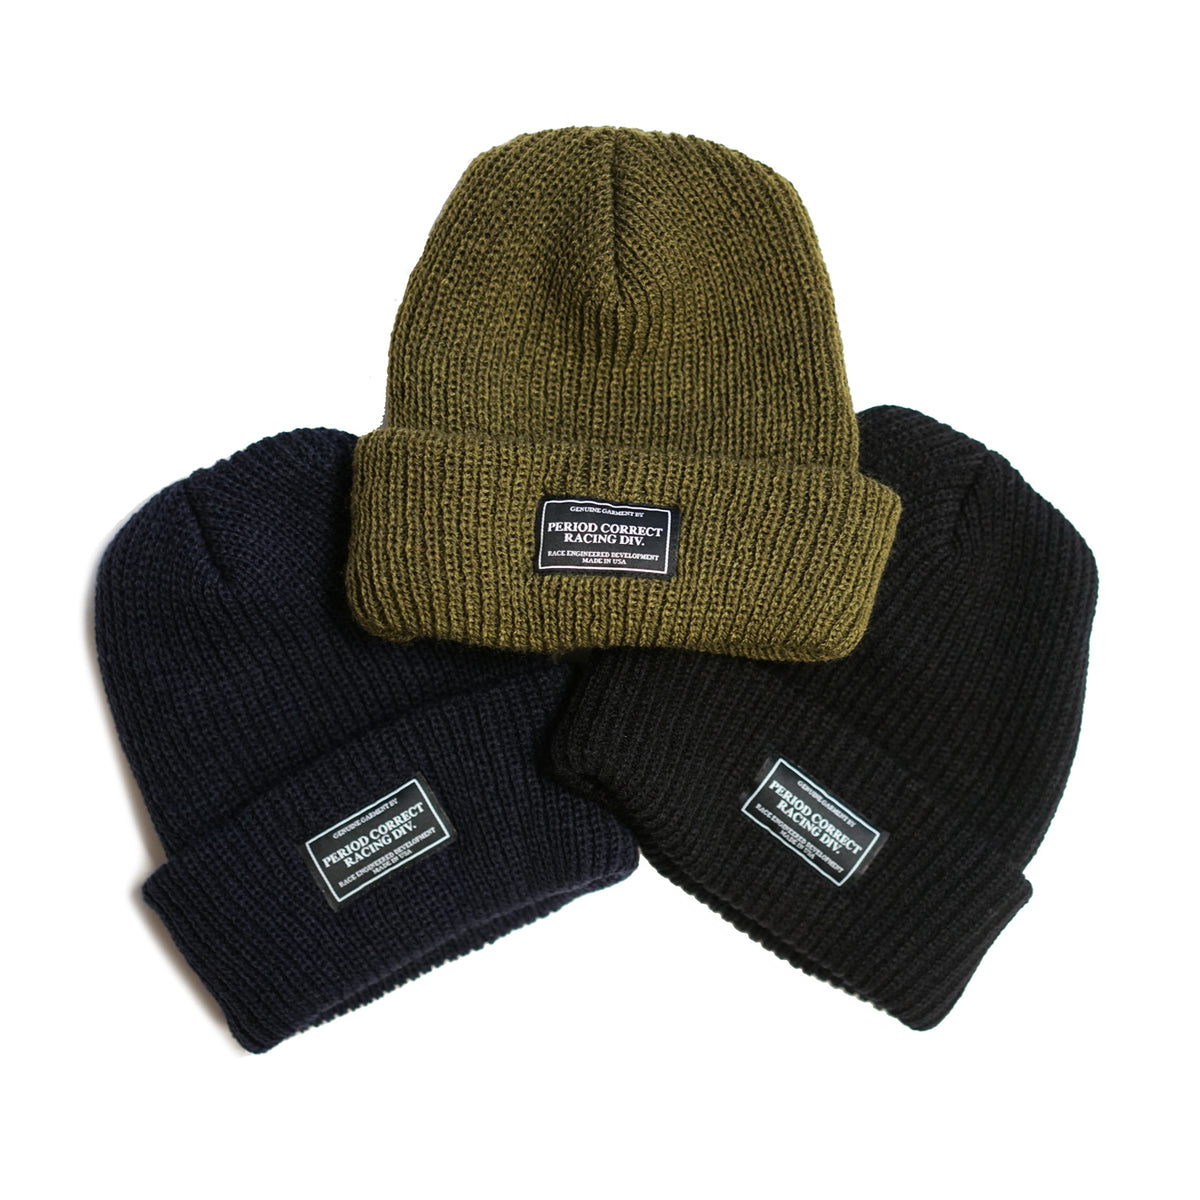 P.C. TYPE 1 WATCH CAP